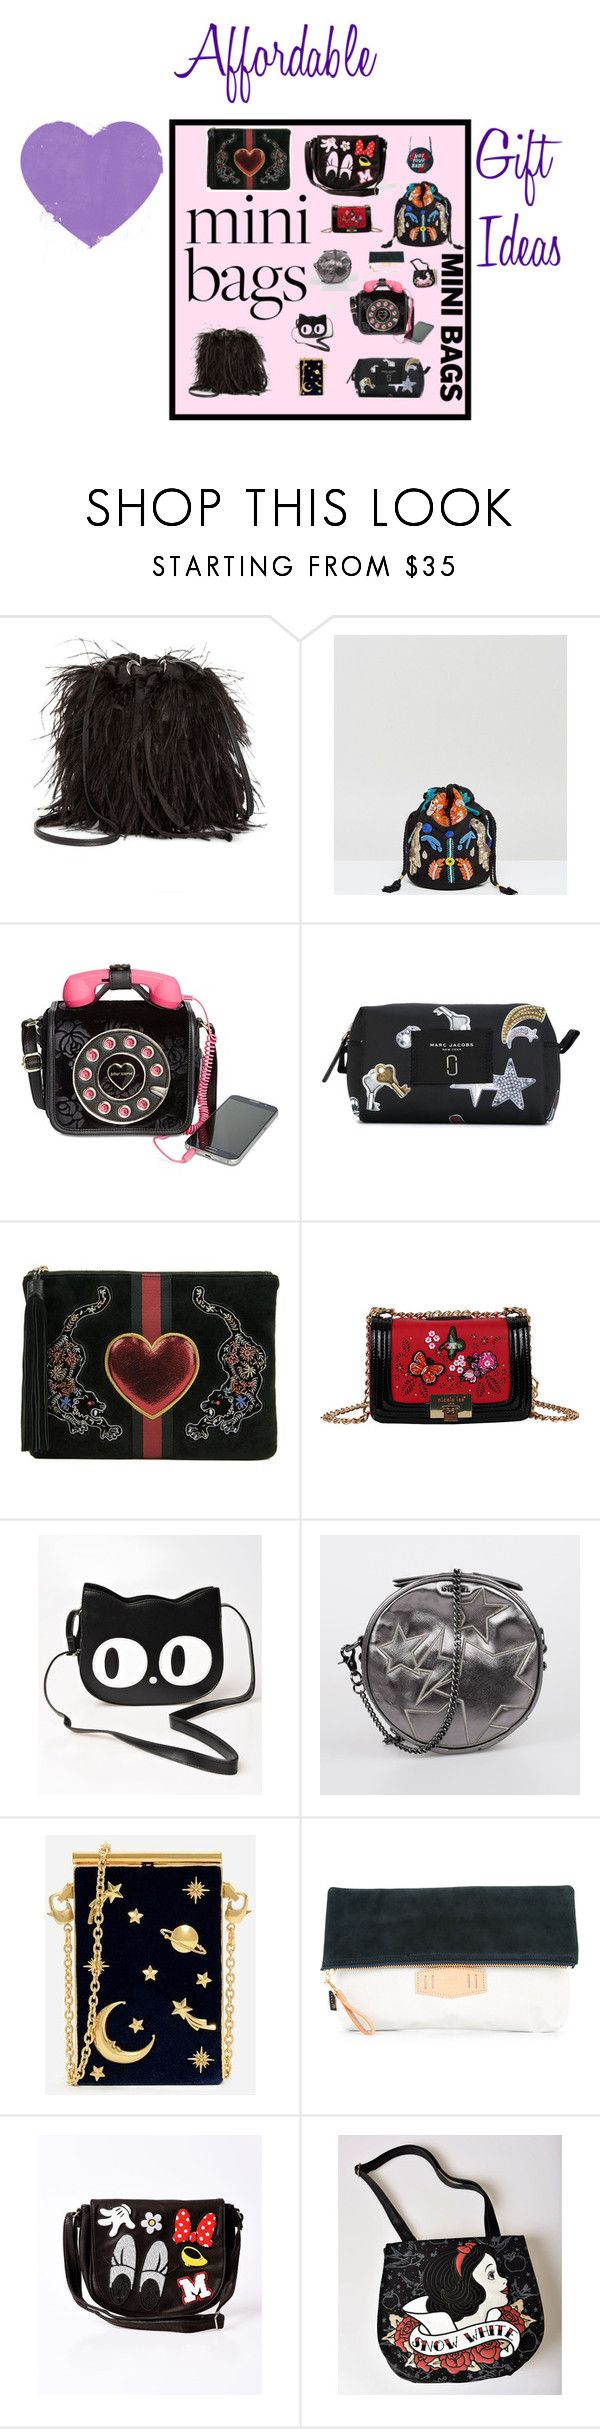 """Mini Bags"" by illuminatab ❤ liked on Polyvore featuring Steve Madden, Reclaimed Vintage, Betsey Johnson, Marc Jacobs, Sam Edelman, Nicole Lee, Banned, Diesel, CHARLES & KEITH and AS2OV"